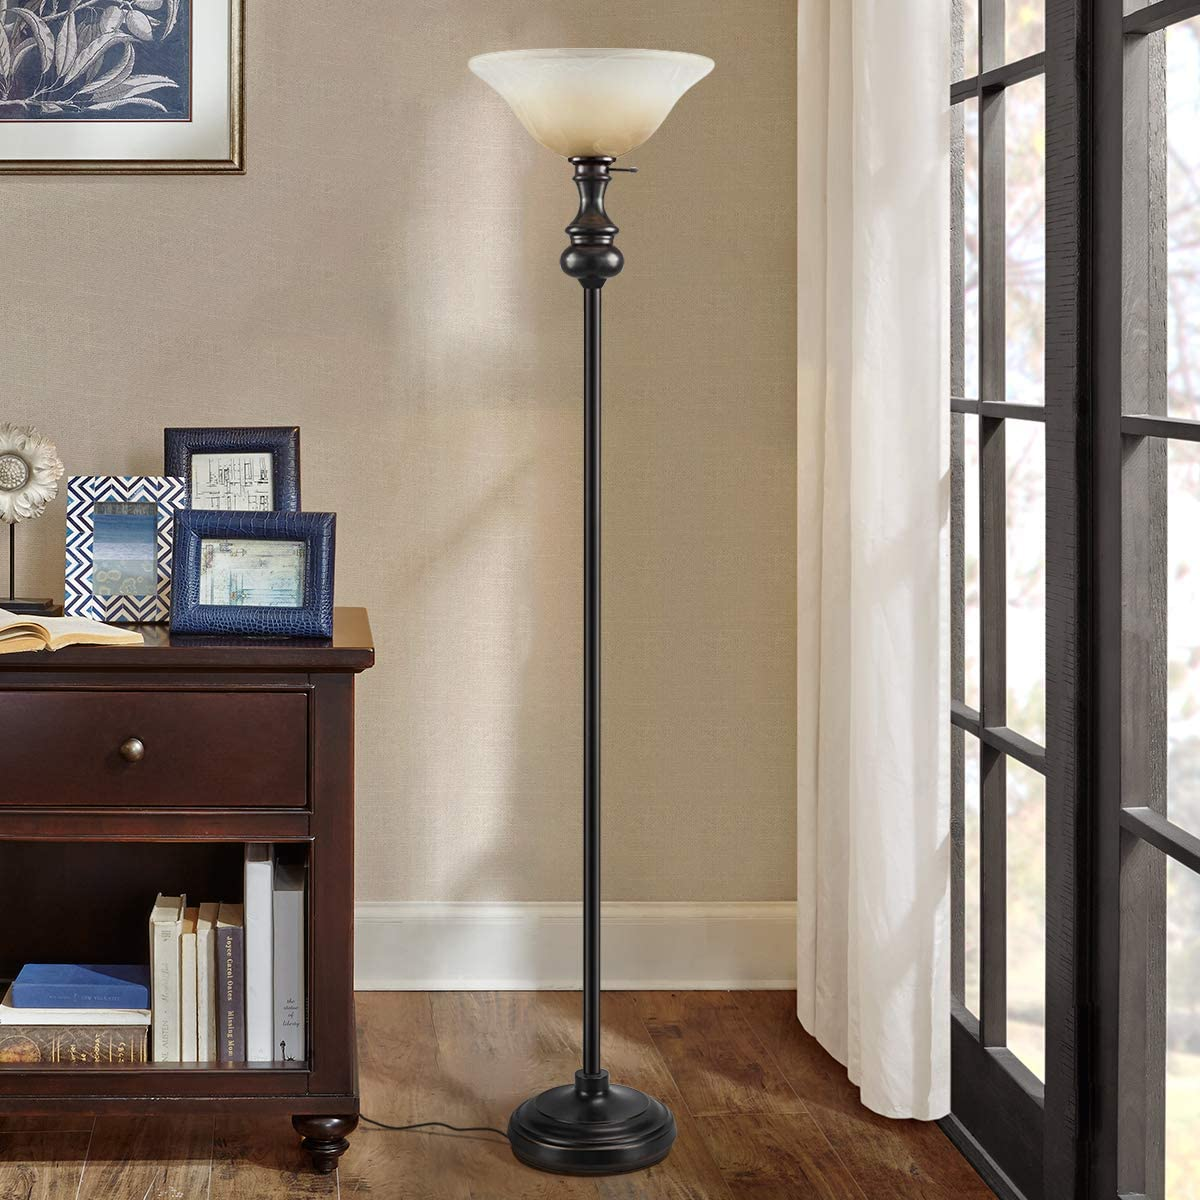 On-each-Modern-Shirley-Torchiere-Floor-Lamp. 15 Unique Artistic Floor Lamps to Light Your Bedroom